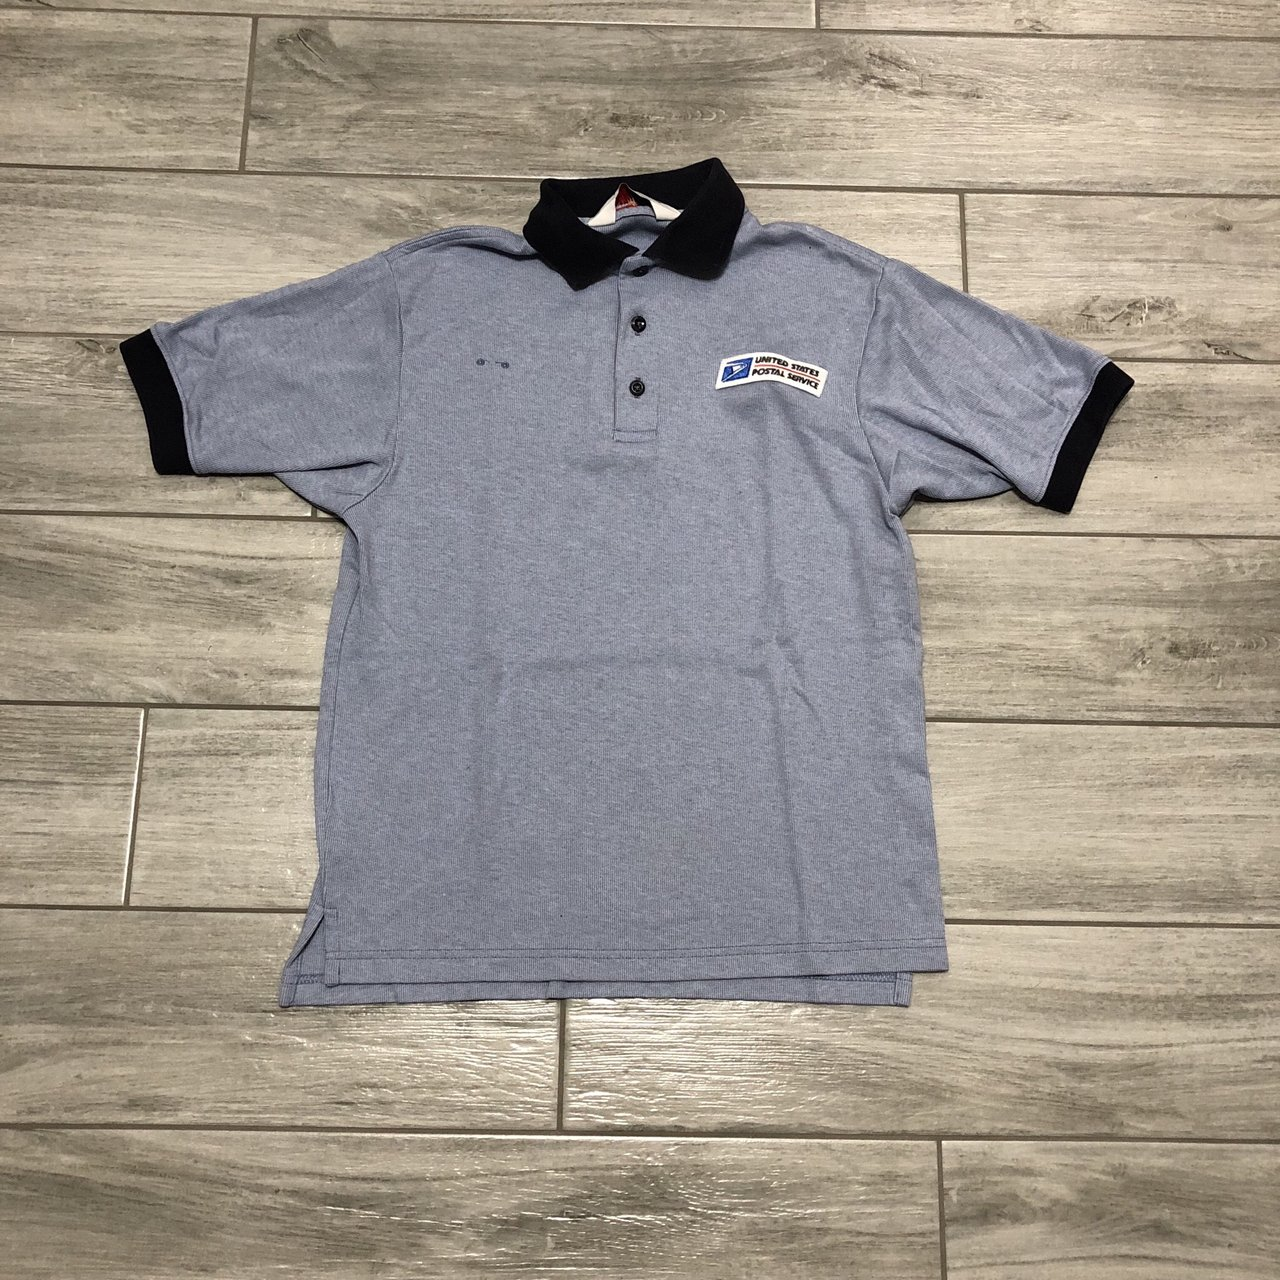 Vintage 90 S Usps Postal Service Polo Shirt Great Tag Say Depop